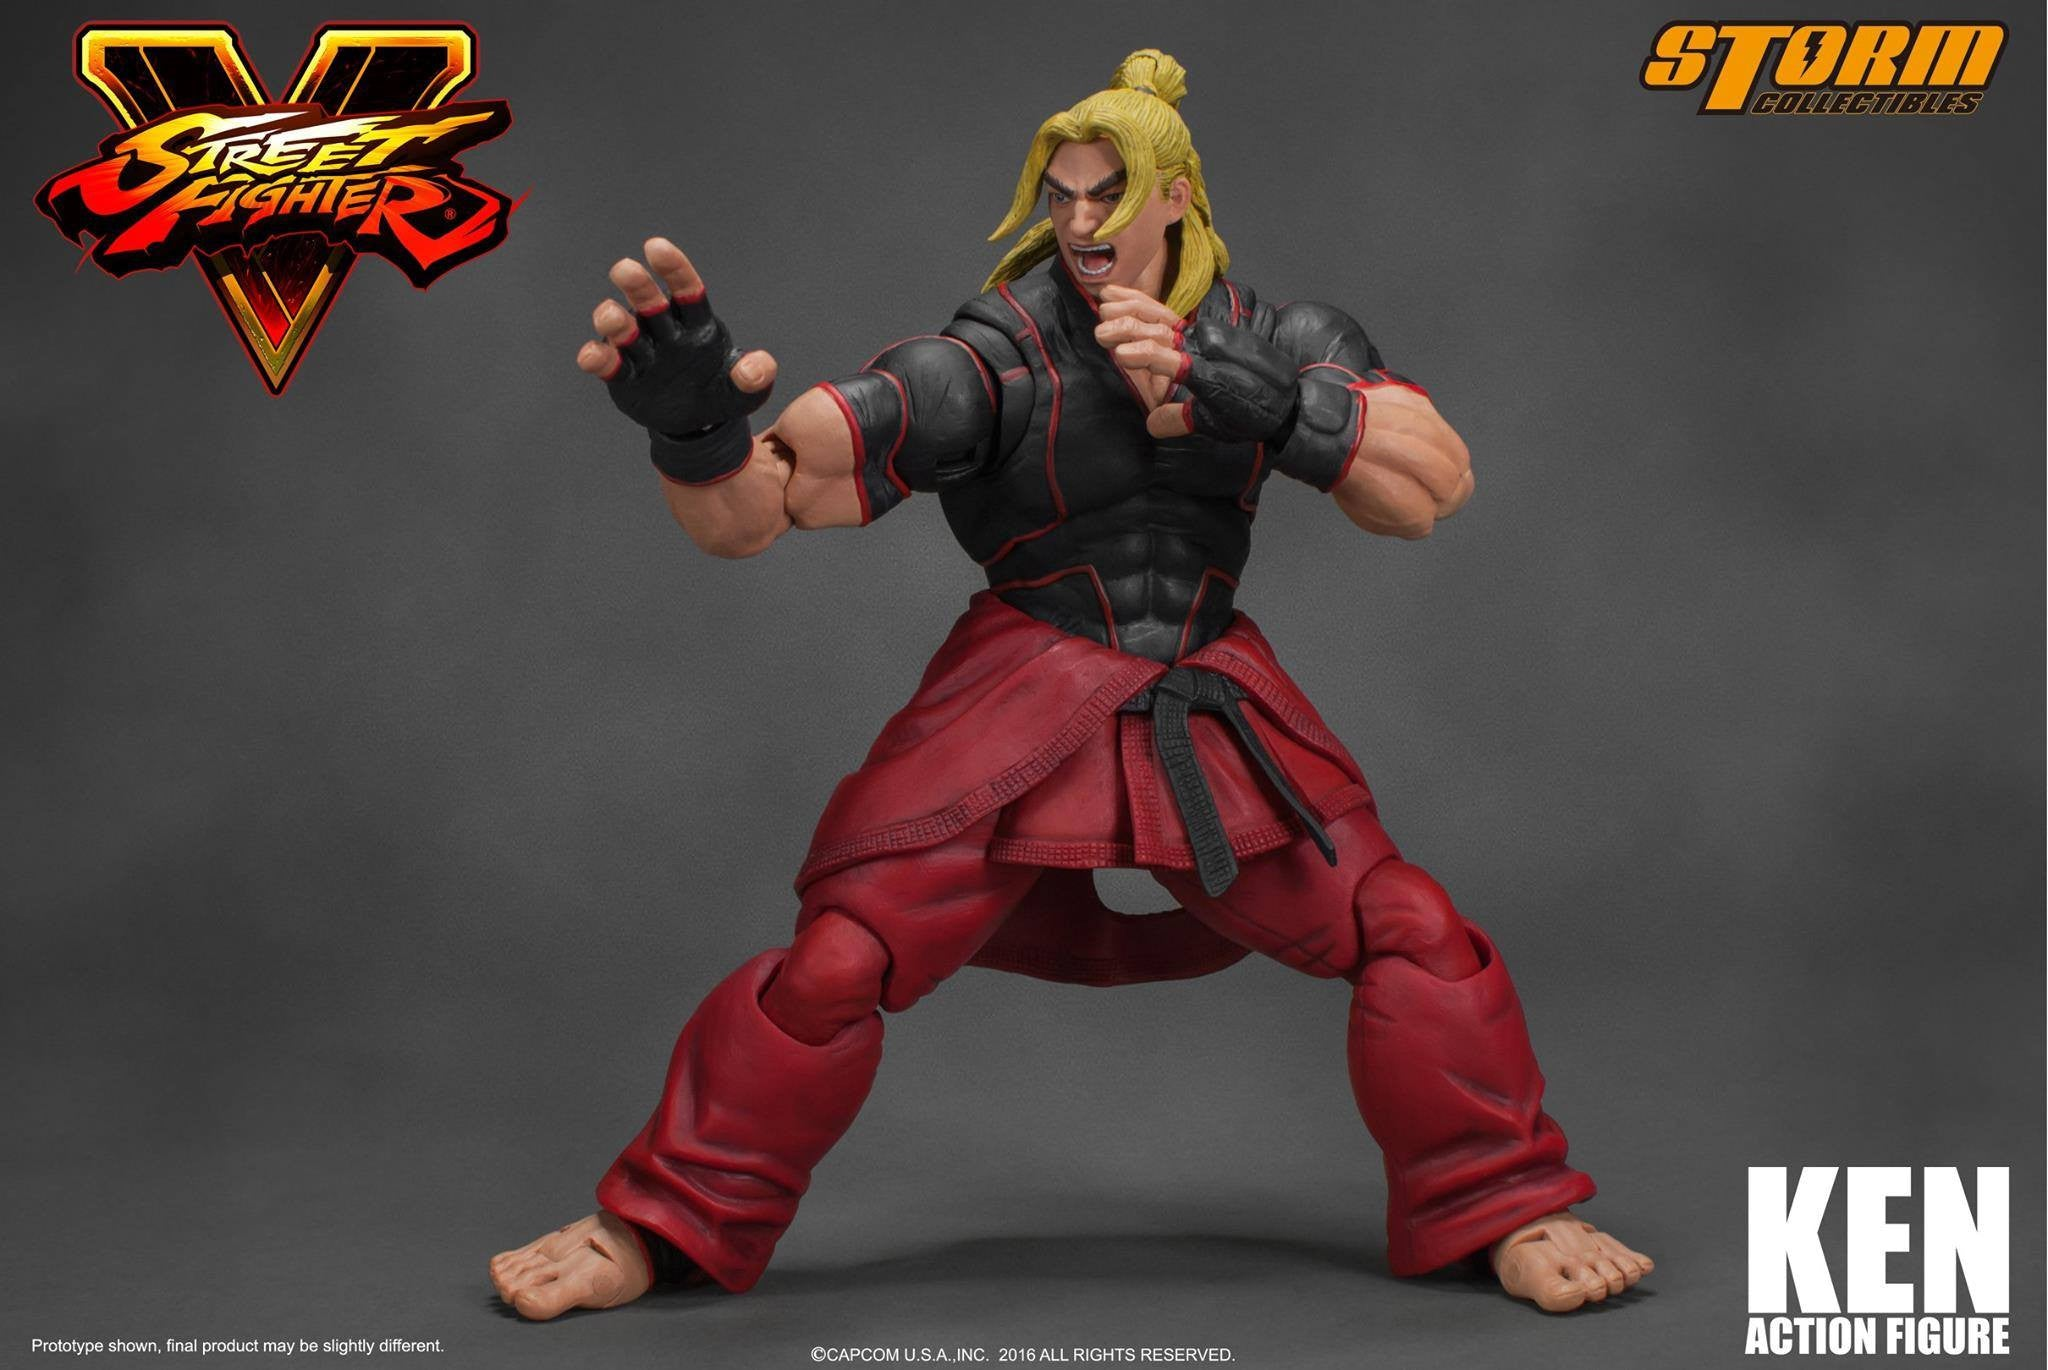 Storm Collectibles - 1:12 Scale Action Figure - Street Fighter V - Ken - Marvelous Toys - 8